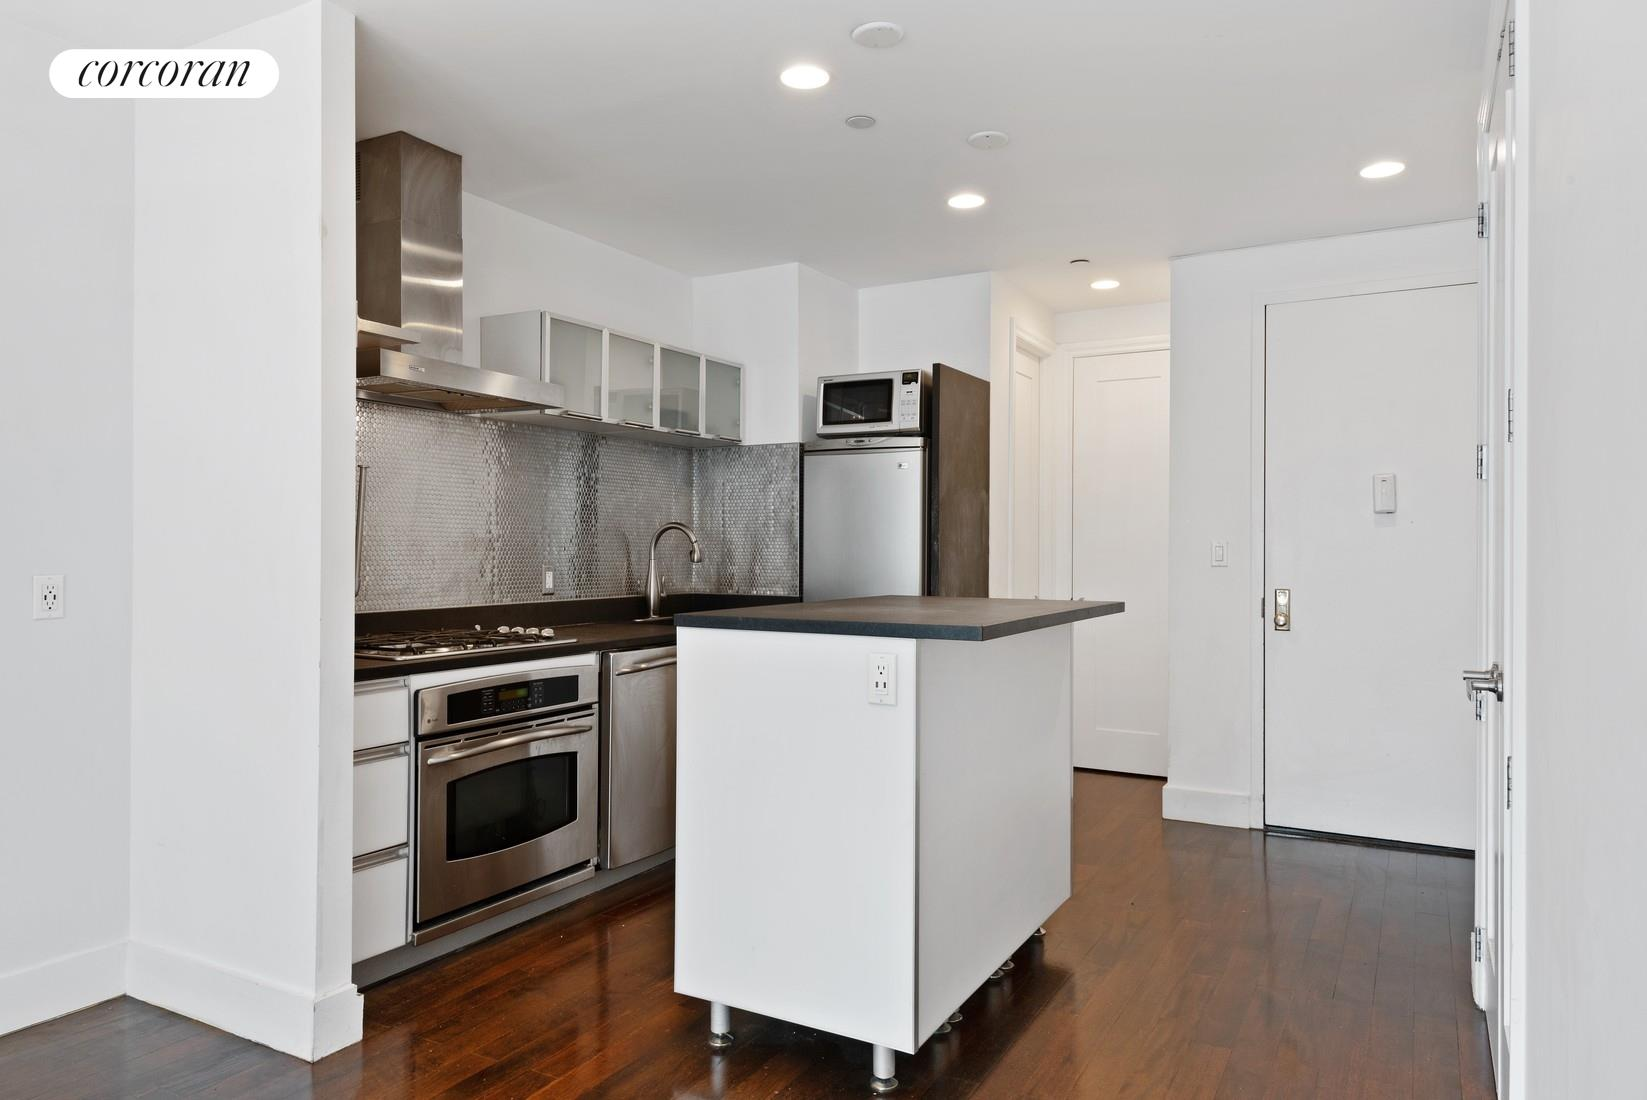 44-27 Purves Street Long Island City Queens NY 11101